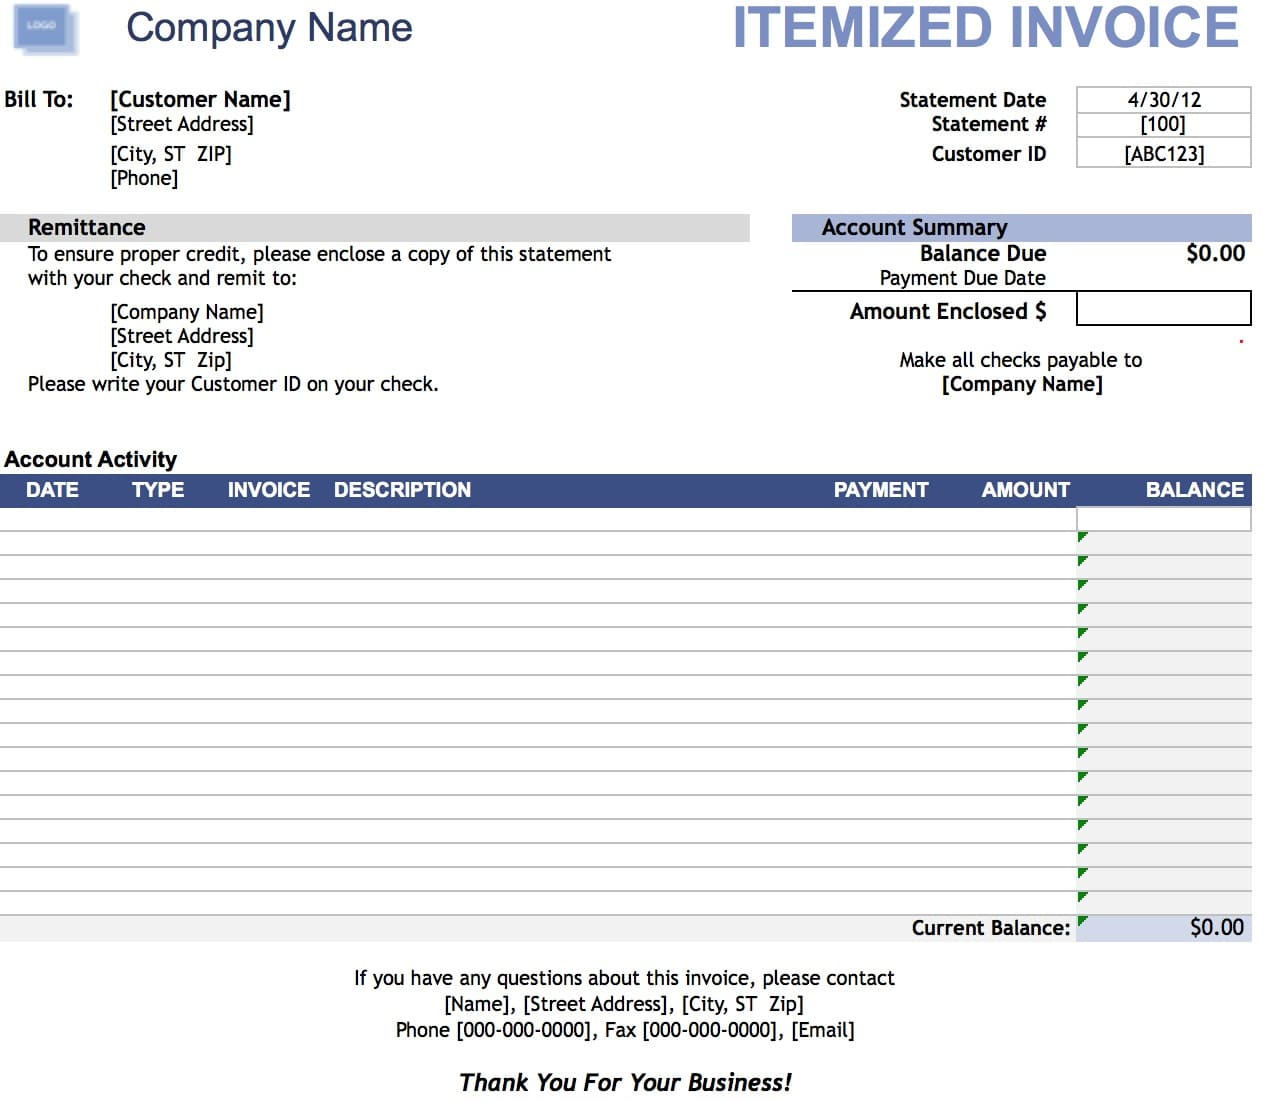 Free Itemized Invoice Template Excel Pdf Word C